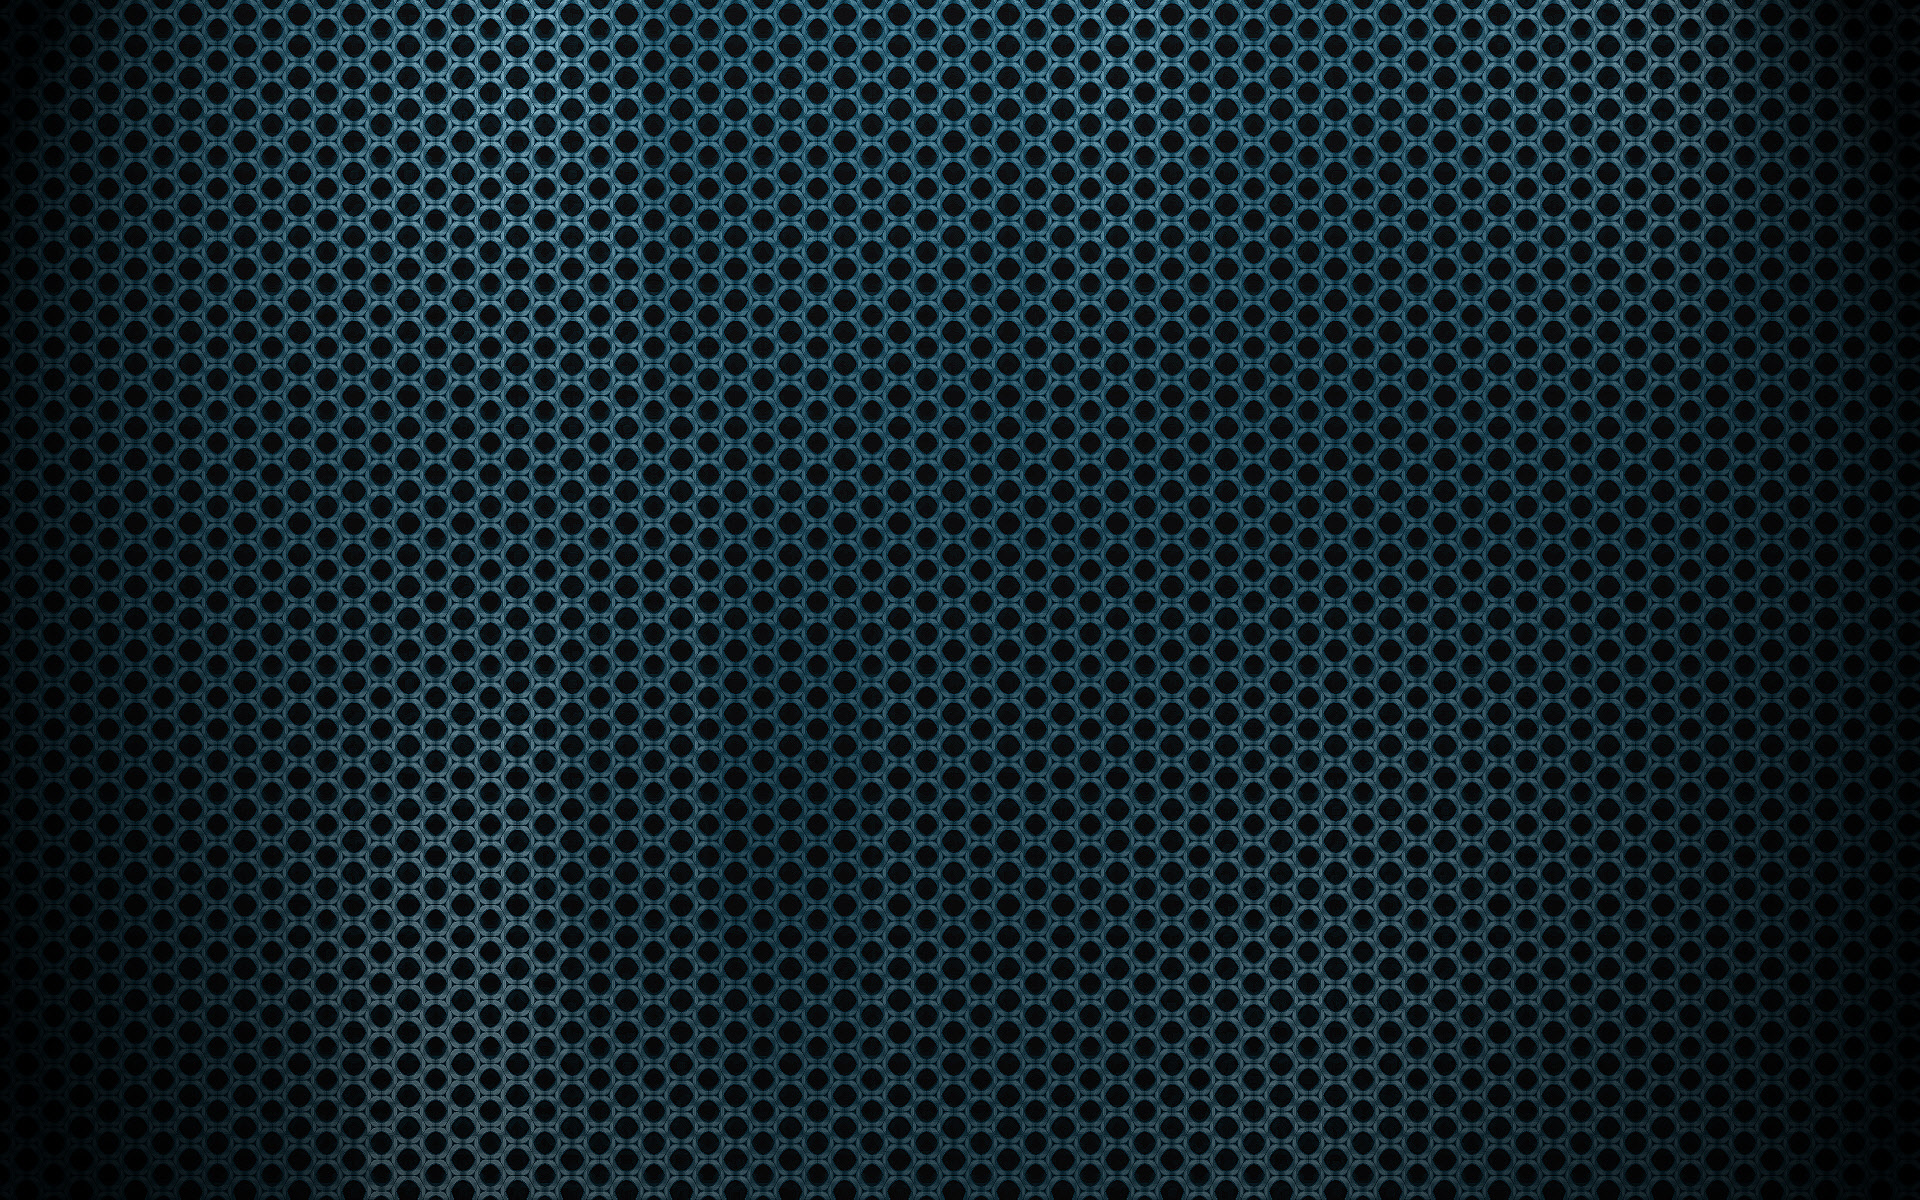 Nike just do it wallpaper 1920x1080 71347 for Navy blue wallpaper